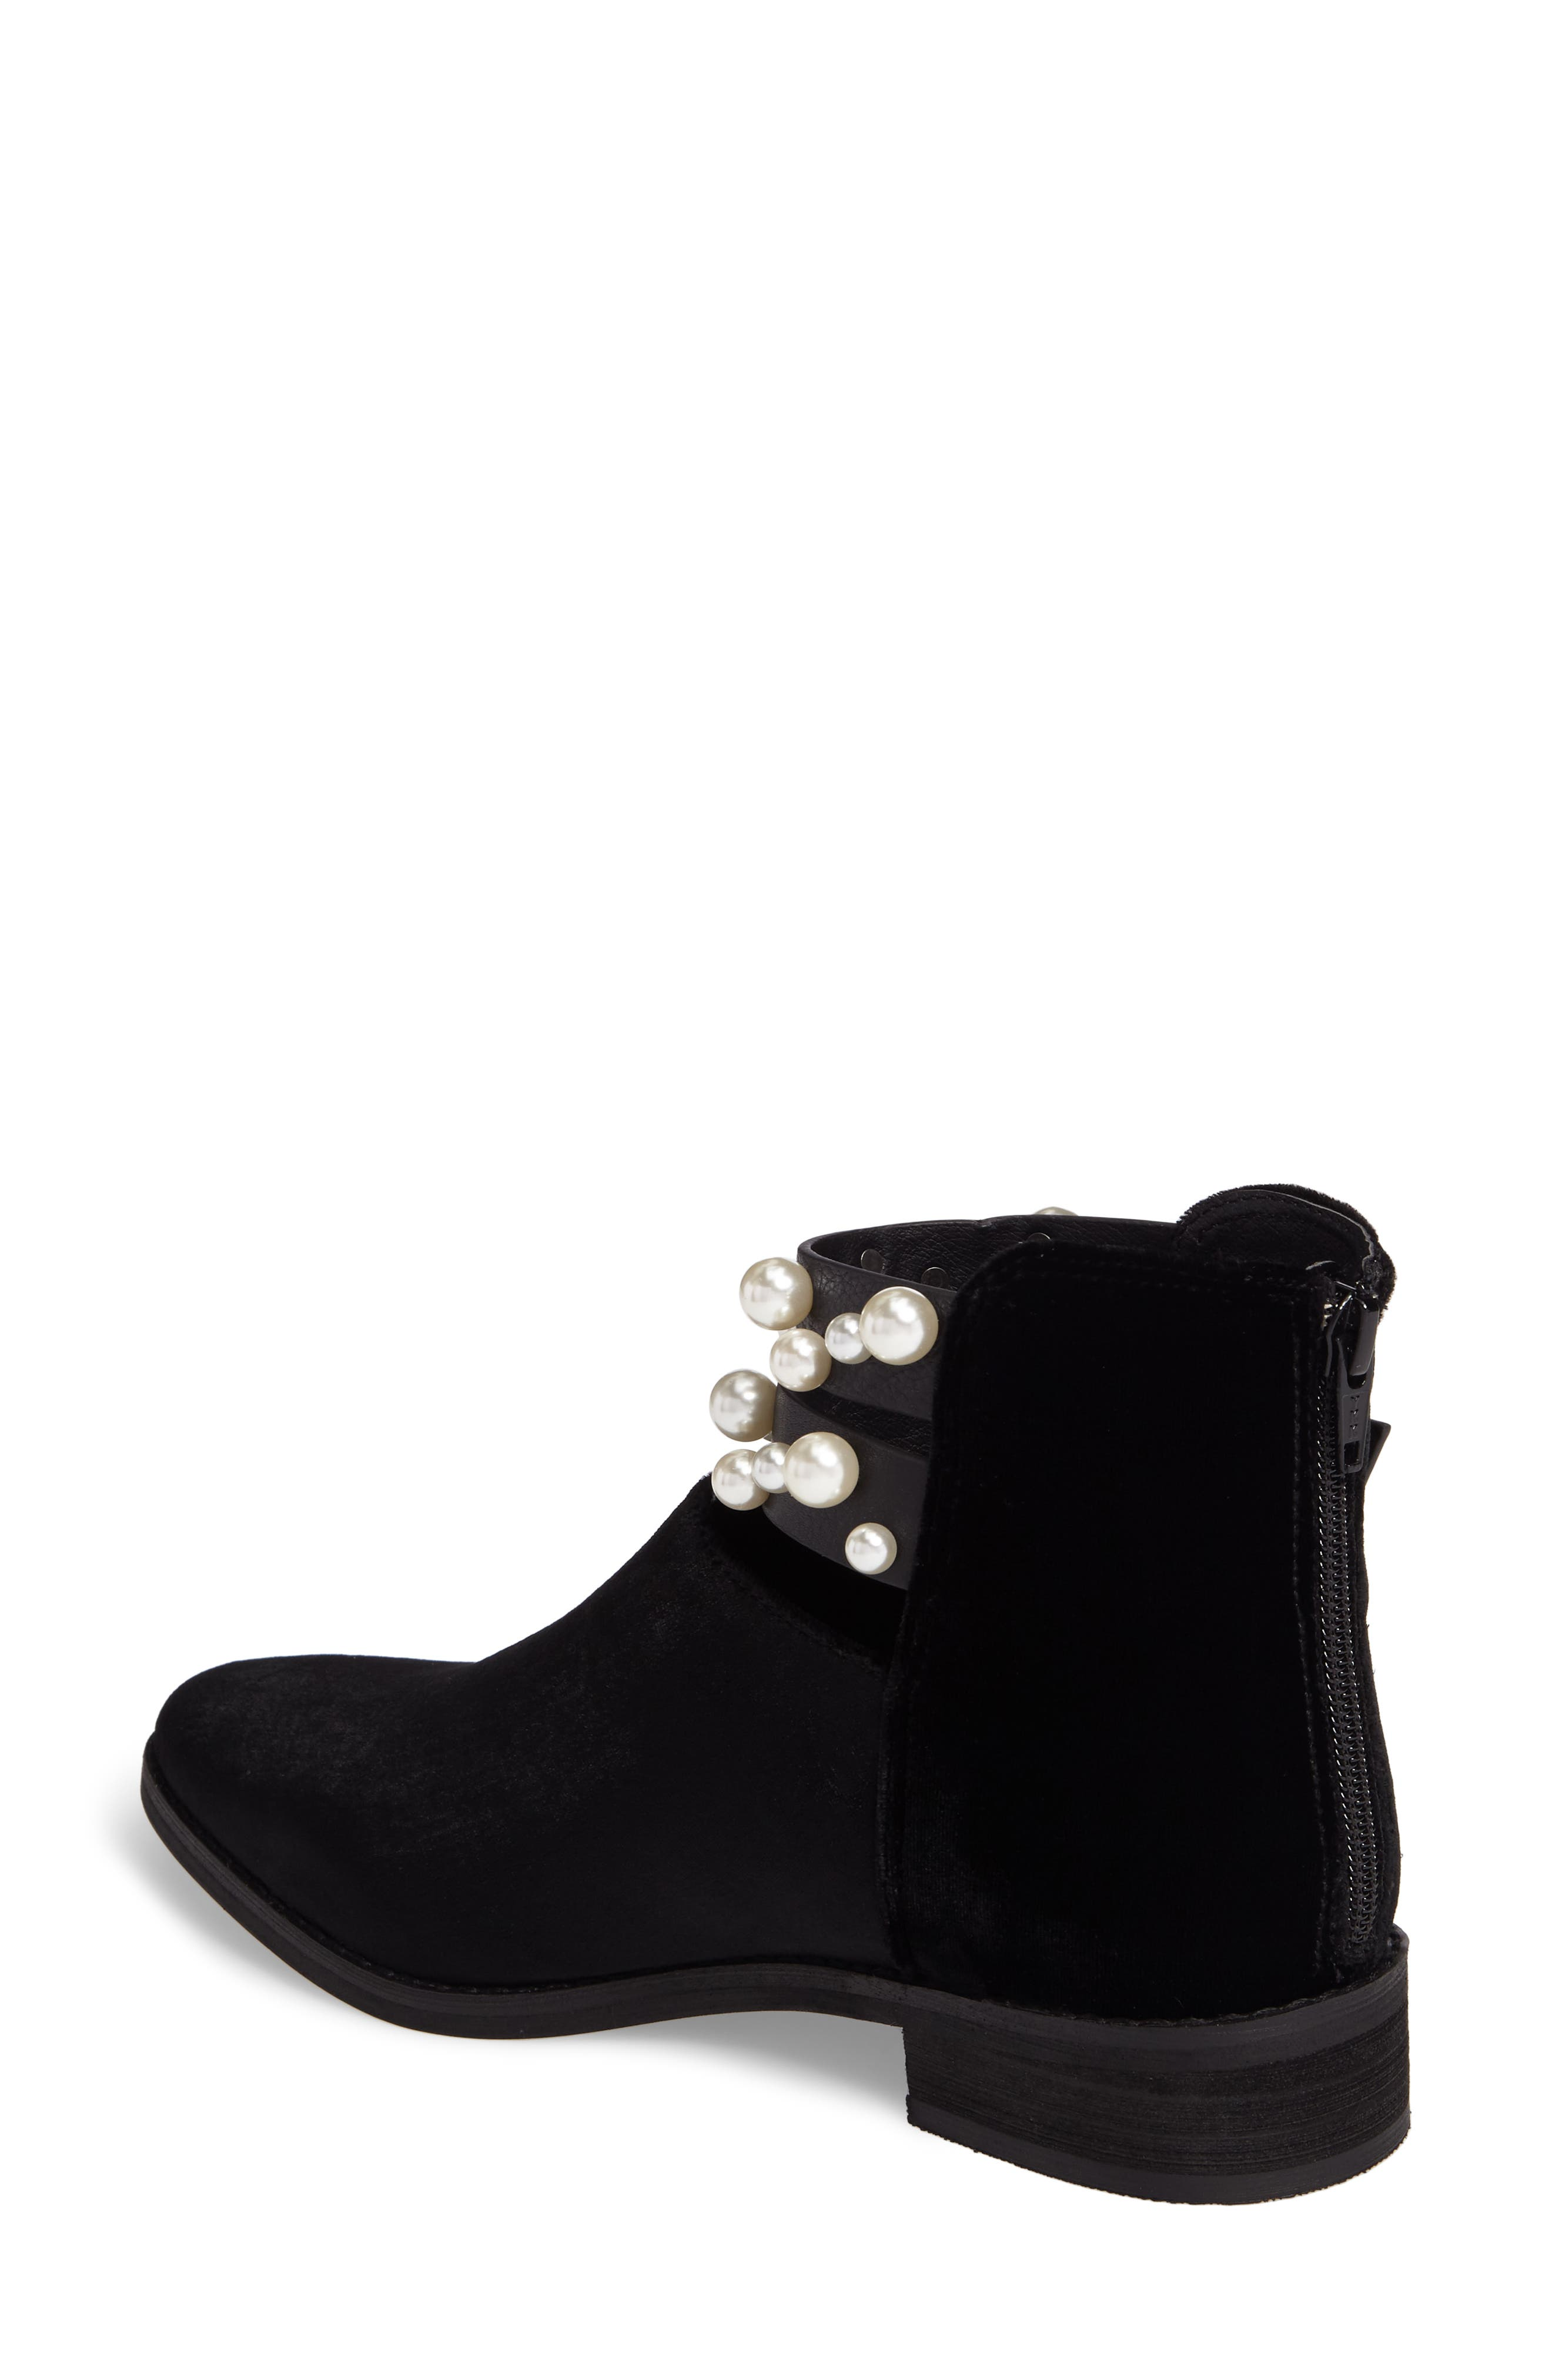 Maisie Embellished Bootie,                             Alternate thumbnail 2, color,                             001